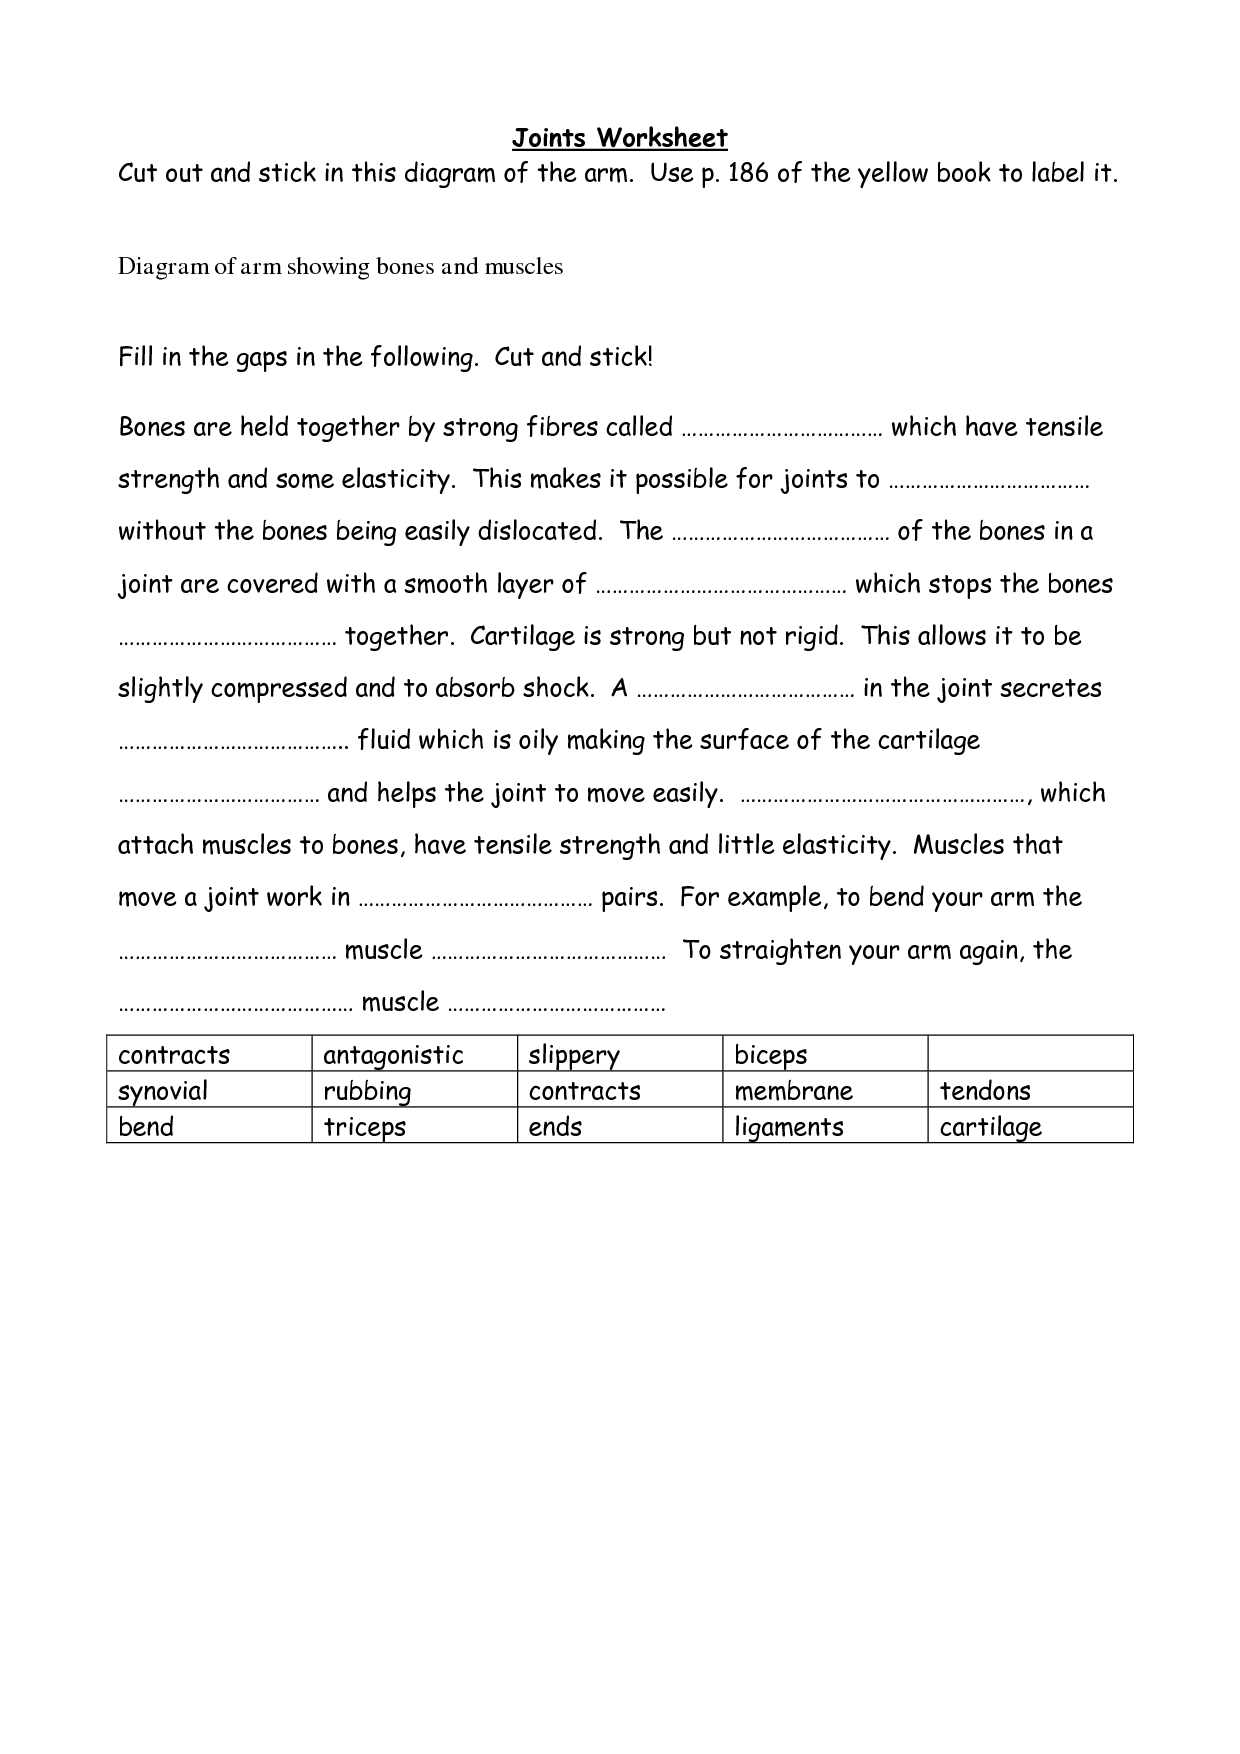 Sheep Heart Dissection Lab Worksheet Answers Good